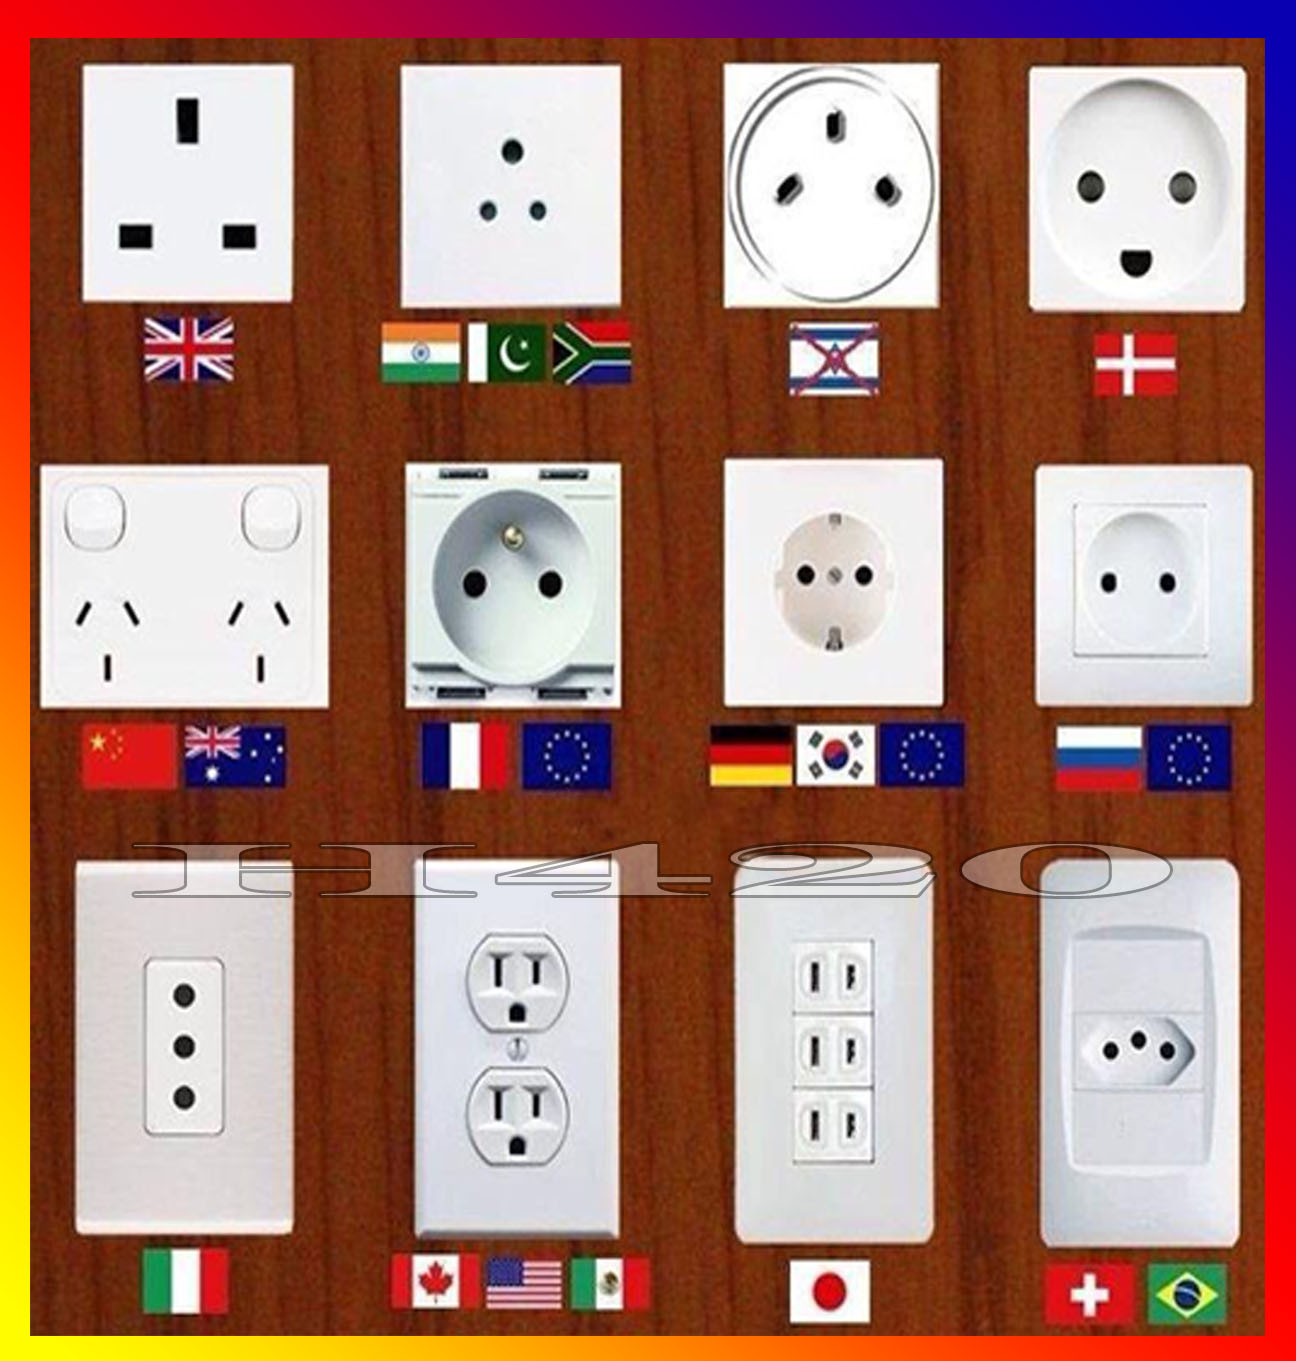 Cool Electrical Outlets A Guide Of Where Electrical Outlets Come From Coolguides